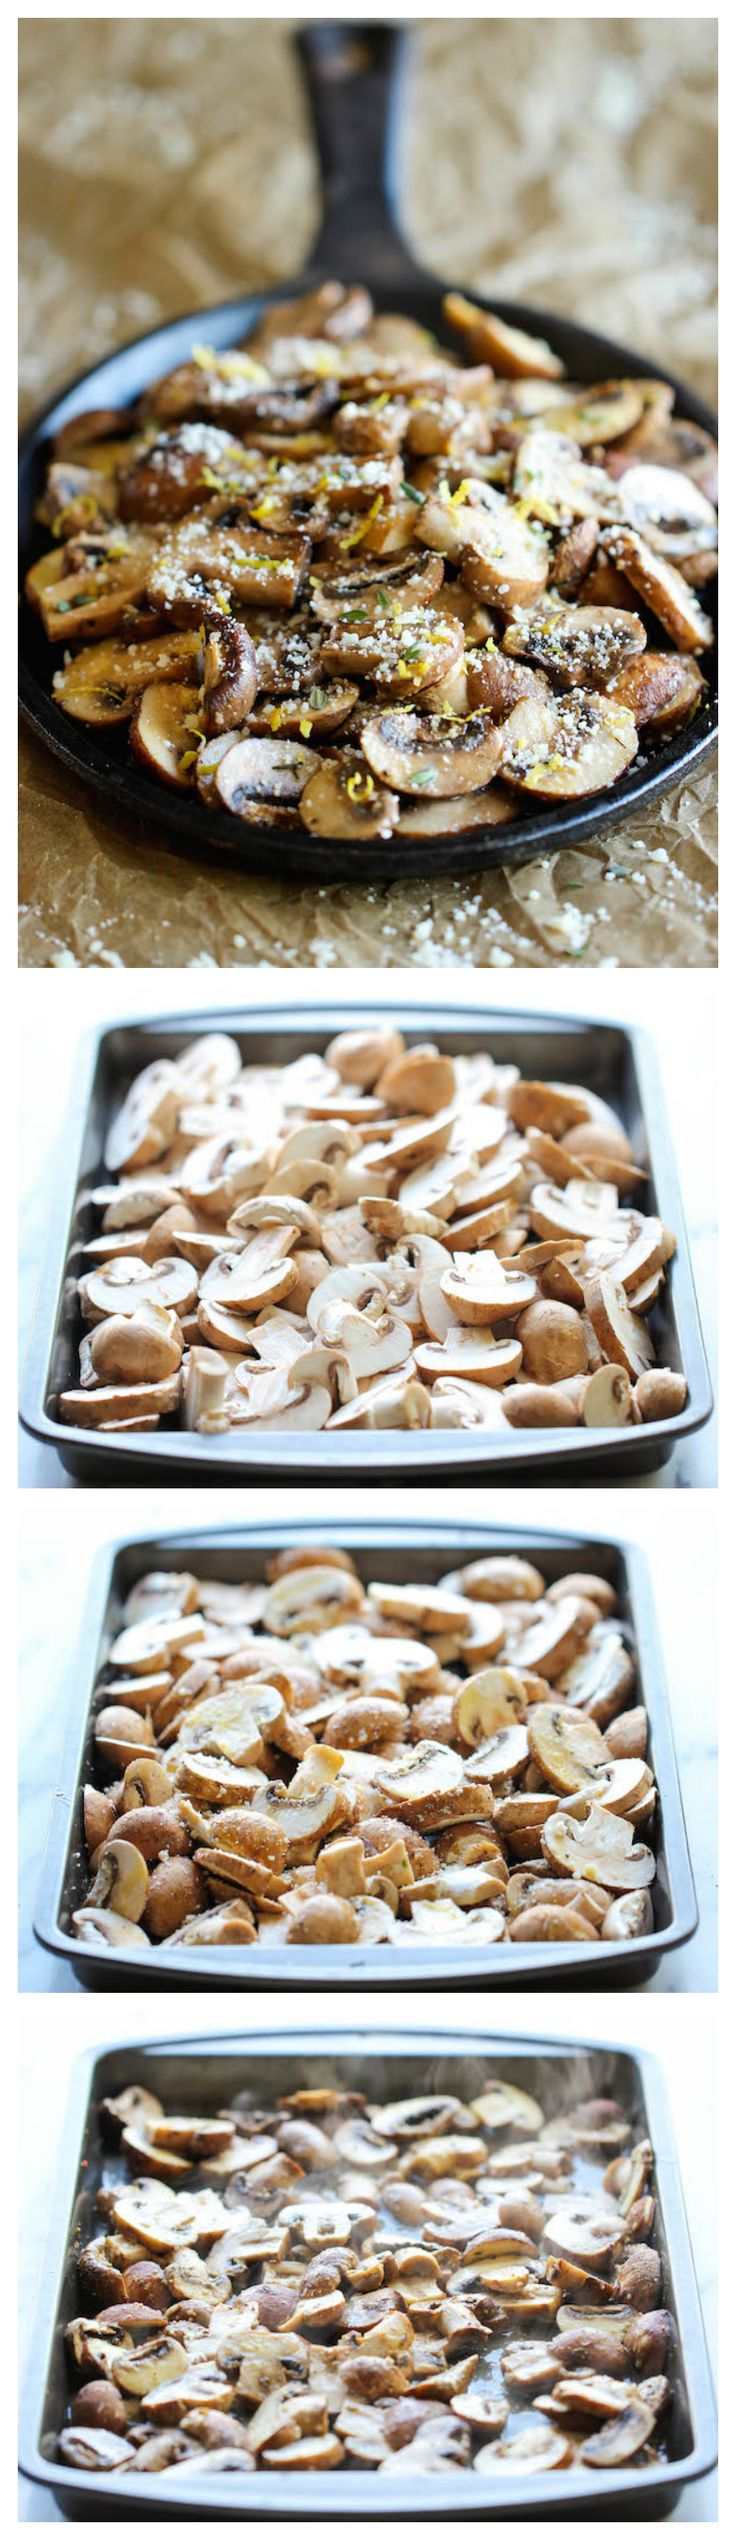 winter coat Baked Parmesan Mushrooms  Recipe